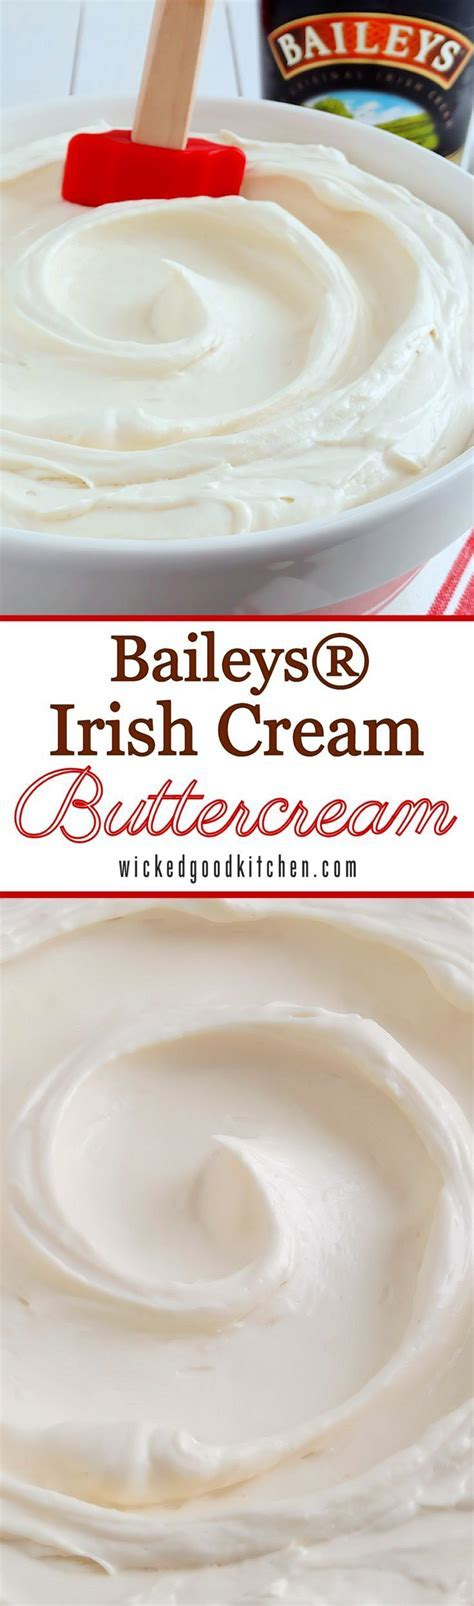 17 Best ideas about Baileys Irish Cream on Pinterest